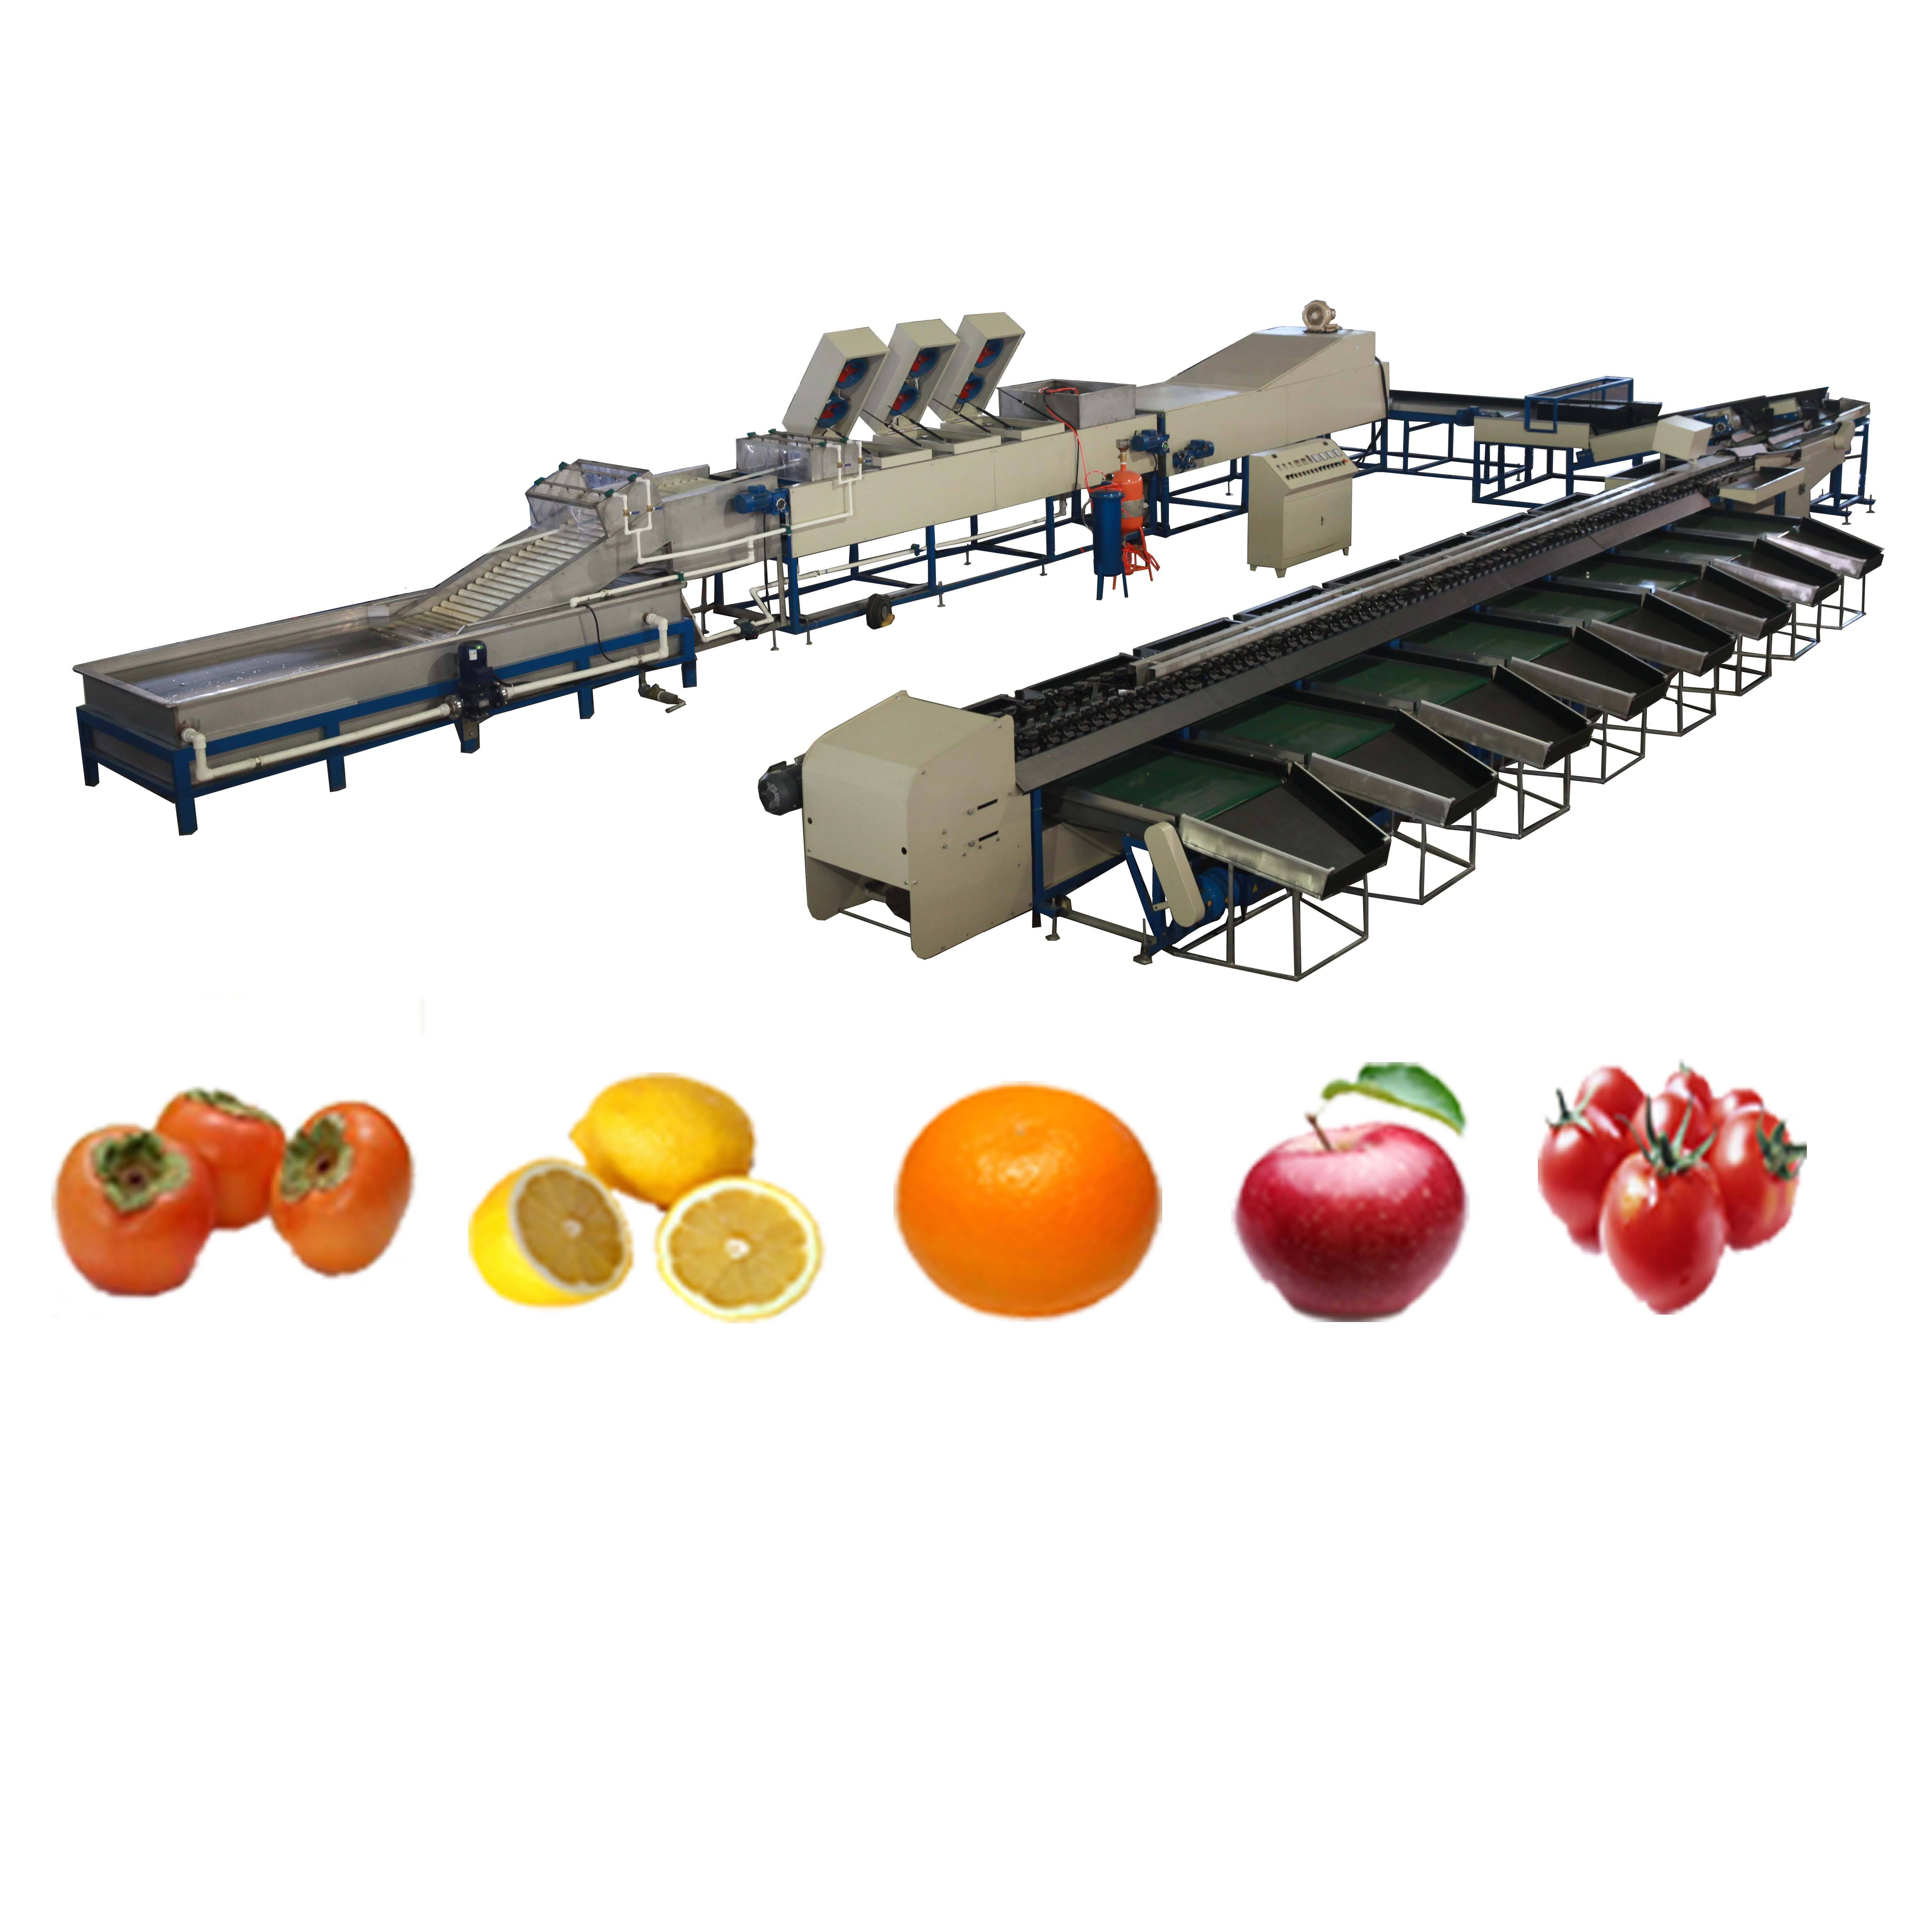 FACTORY OUTLET(FUSHI BRAND) FRUIT&VEGETABLE PROCESSING WASHING WAXING AND SORTING MACHINE